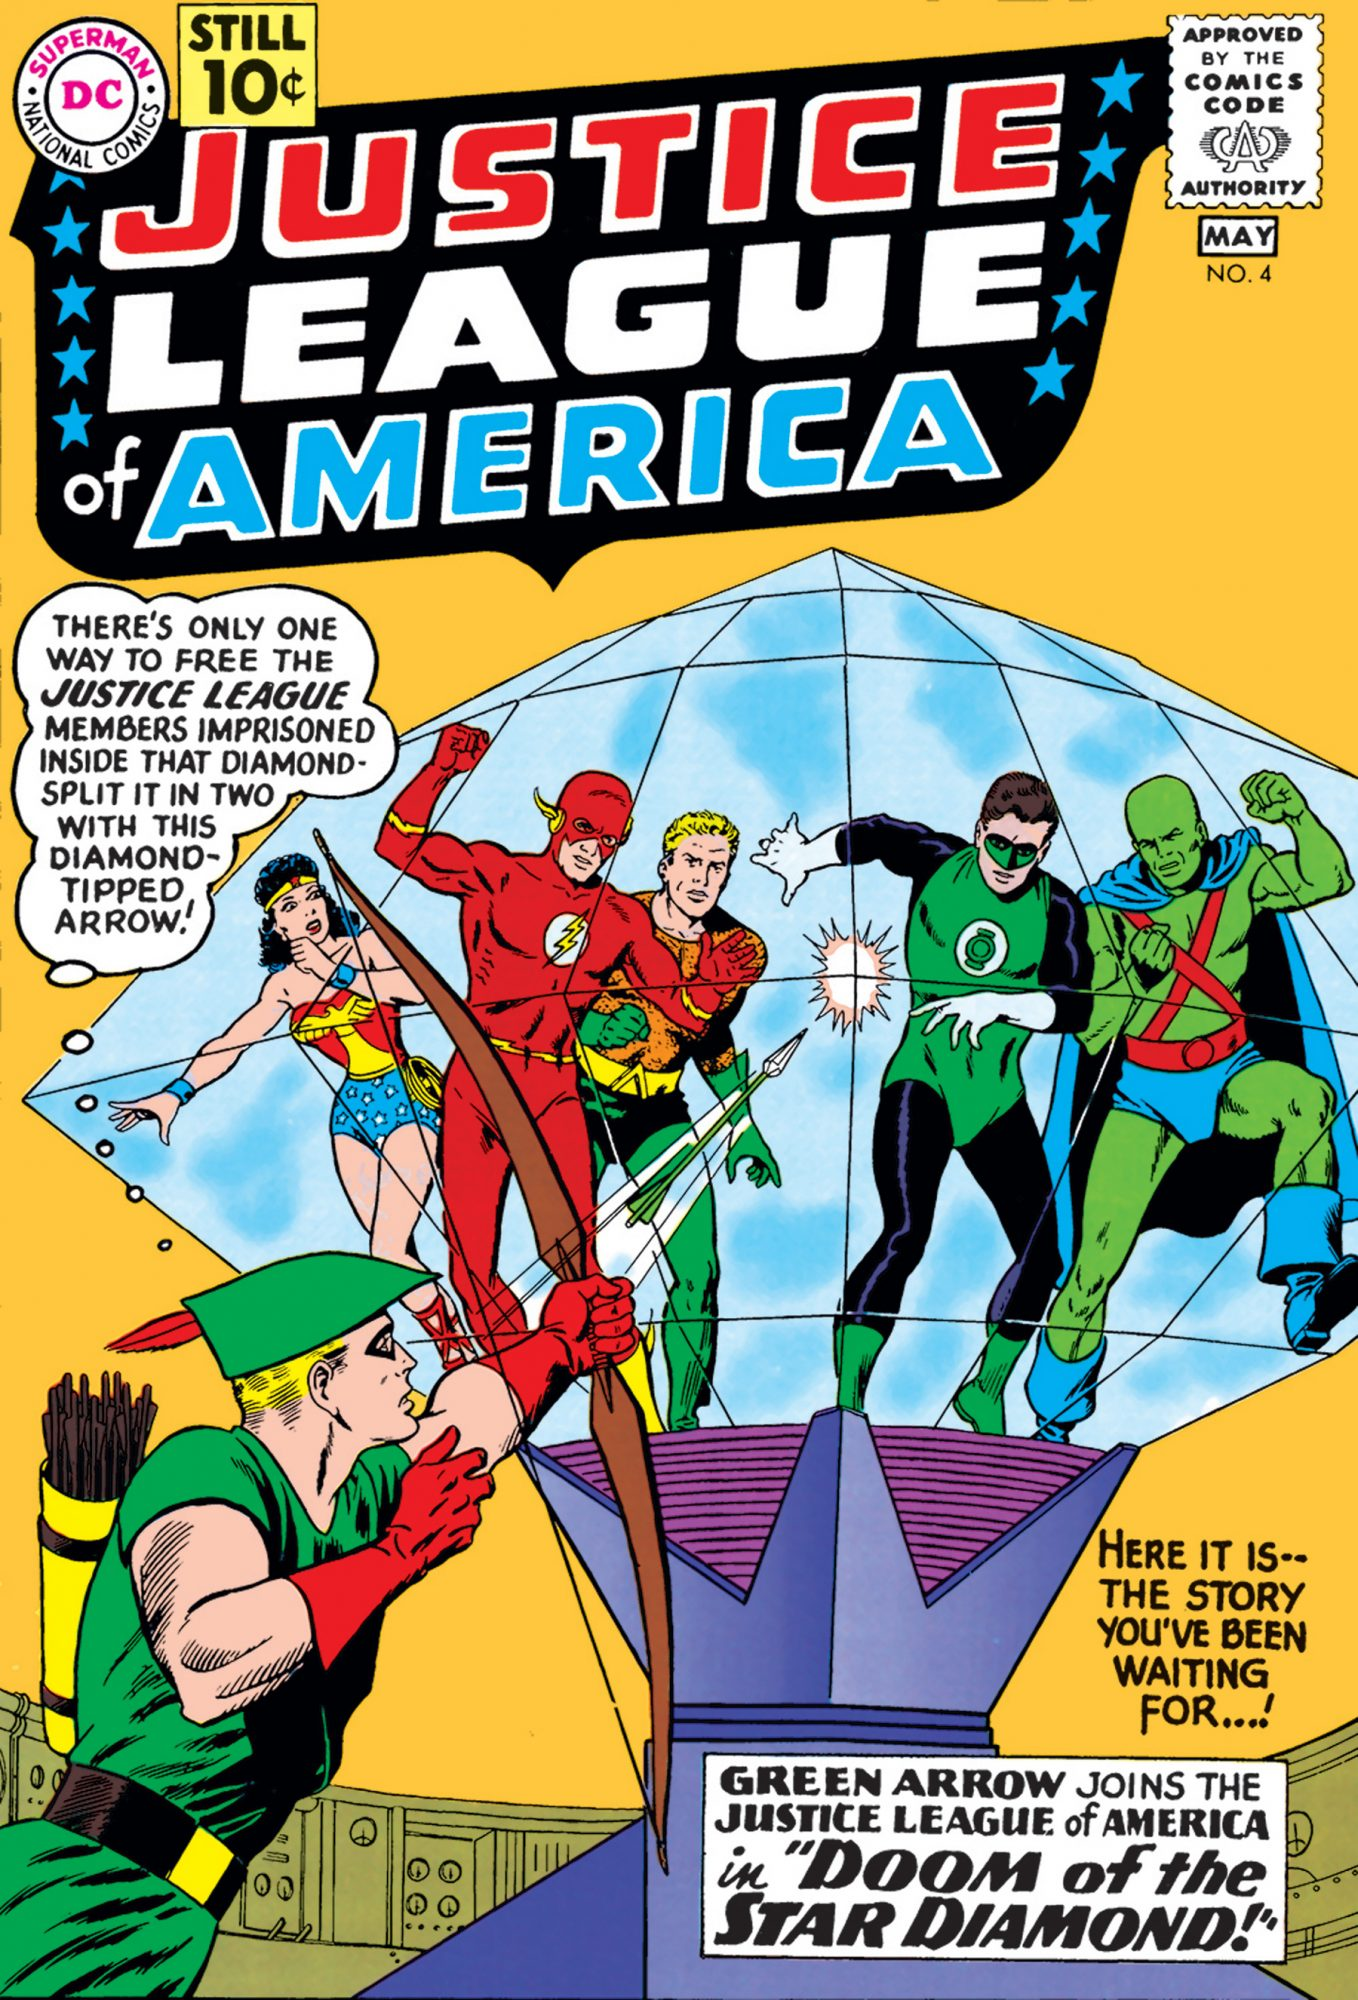 1961: GREEN ARROW JOINS